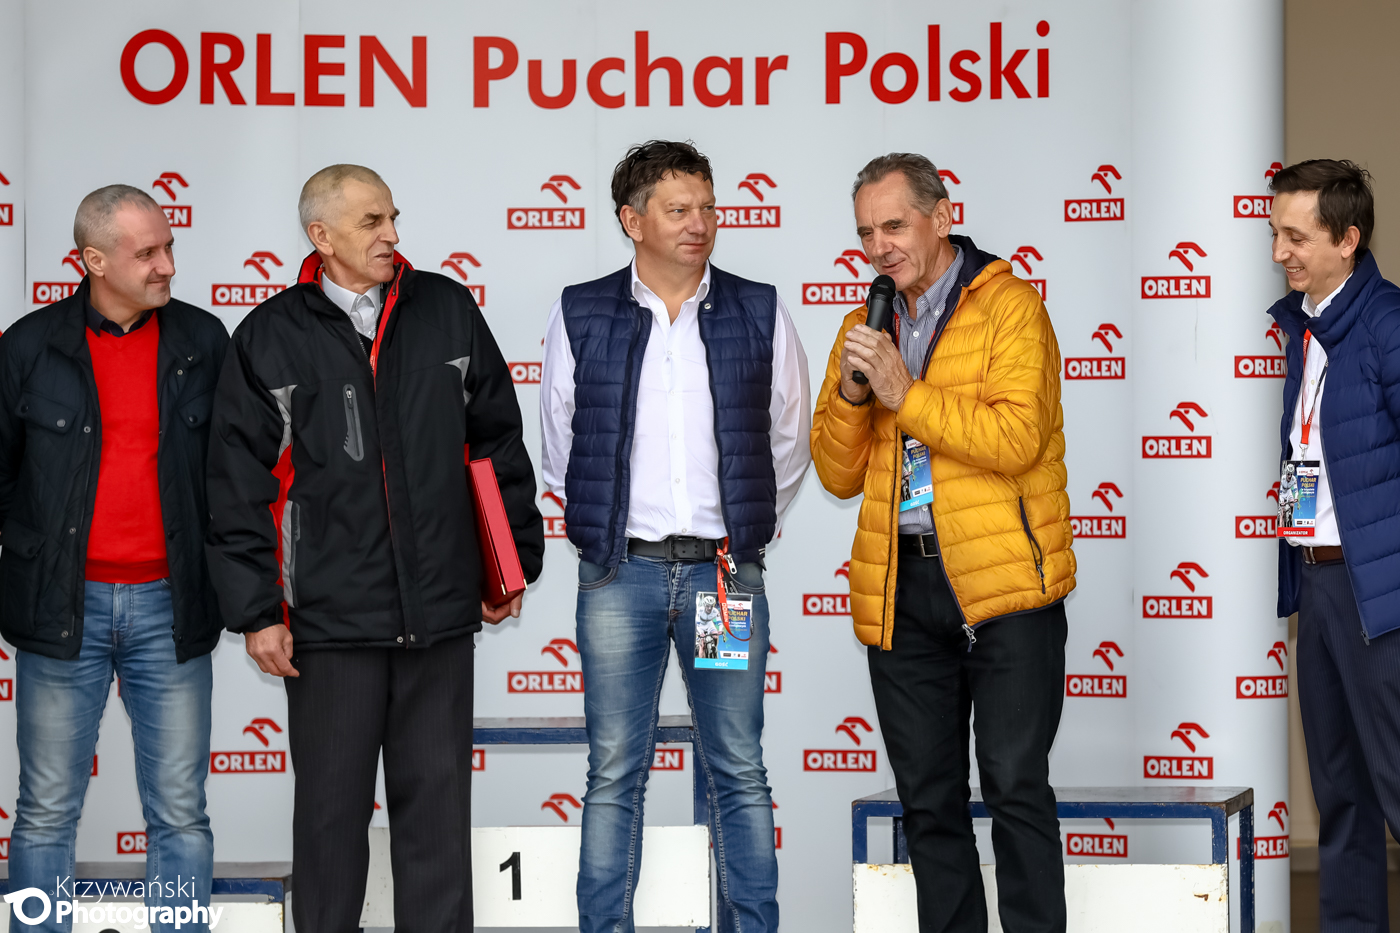 http://magazynrowerowy.pl/logmein/wp-content/uploads/2017/10/CX-II-Seria_1117.jpg